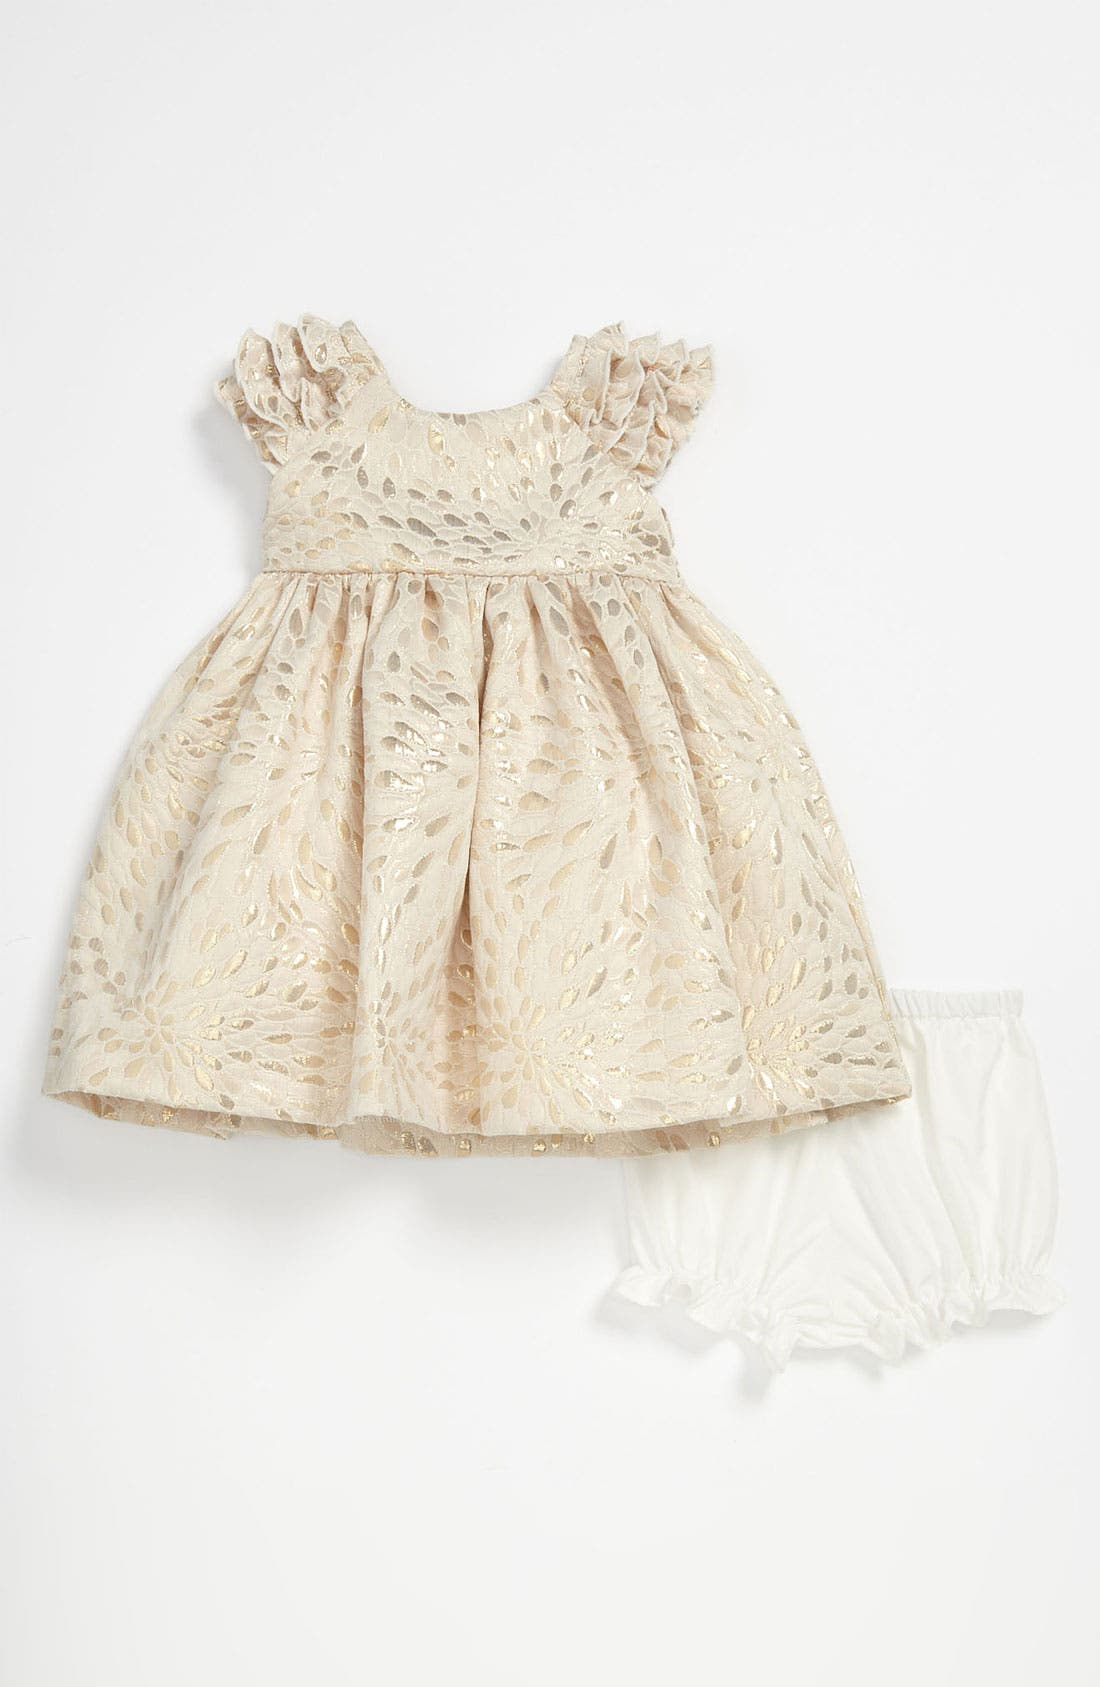 Alternate Image 1 Selected - Laura Ashley Brocade Dress & Bloomers (Infant)